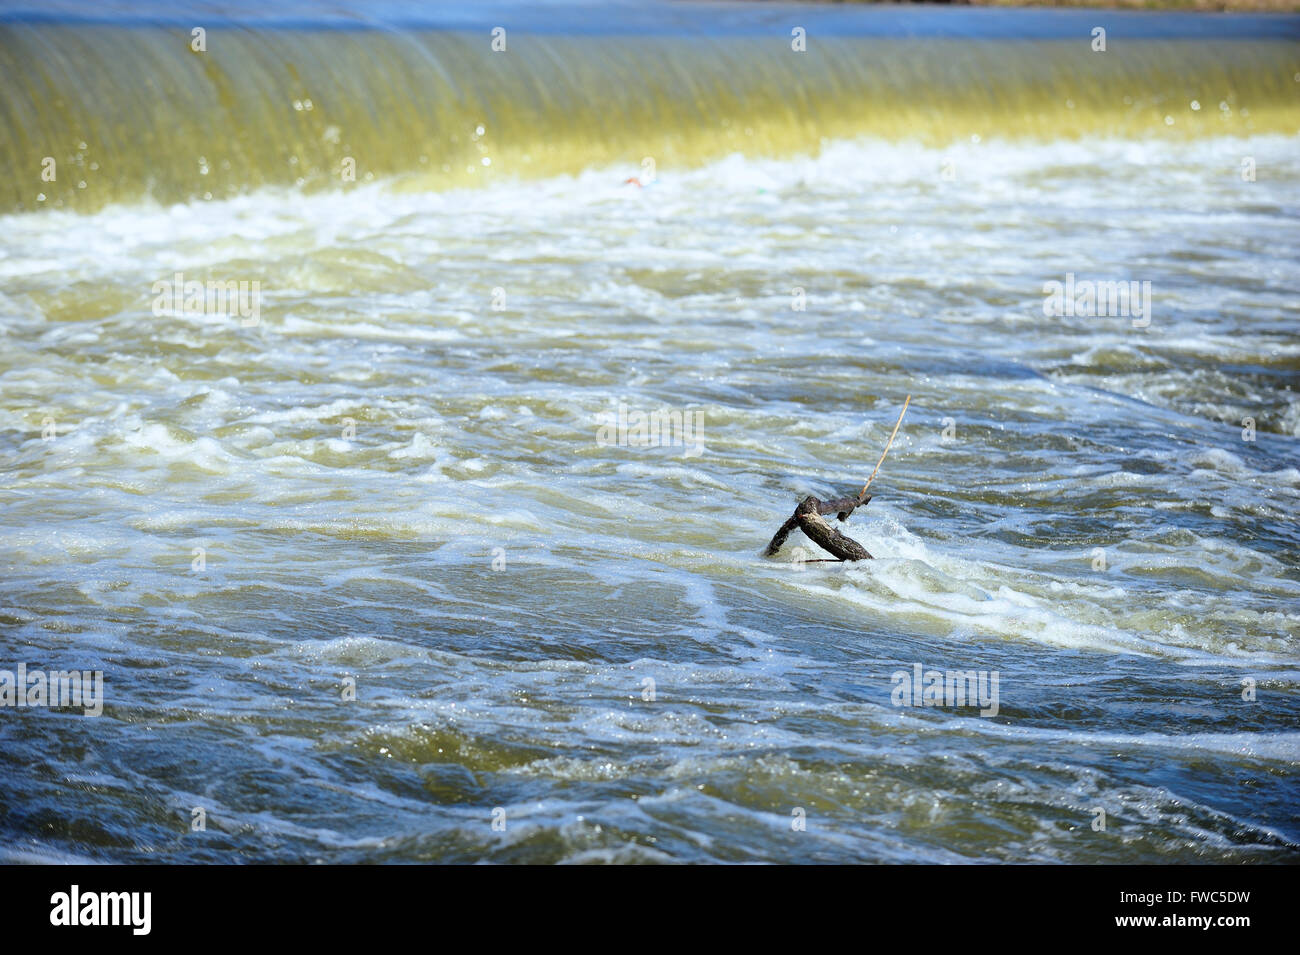 Rushing water pours over a Fox River dam in a swirl of activity. South Elgin, Illinois, USA. - Stock Image